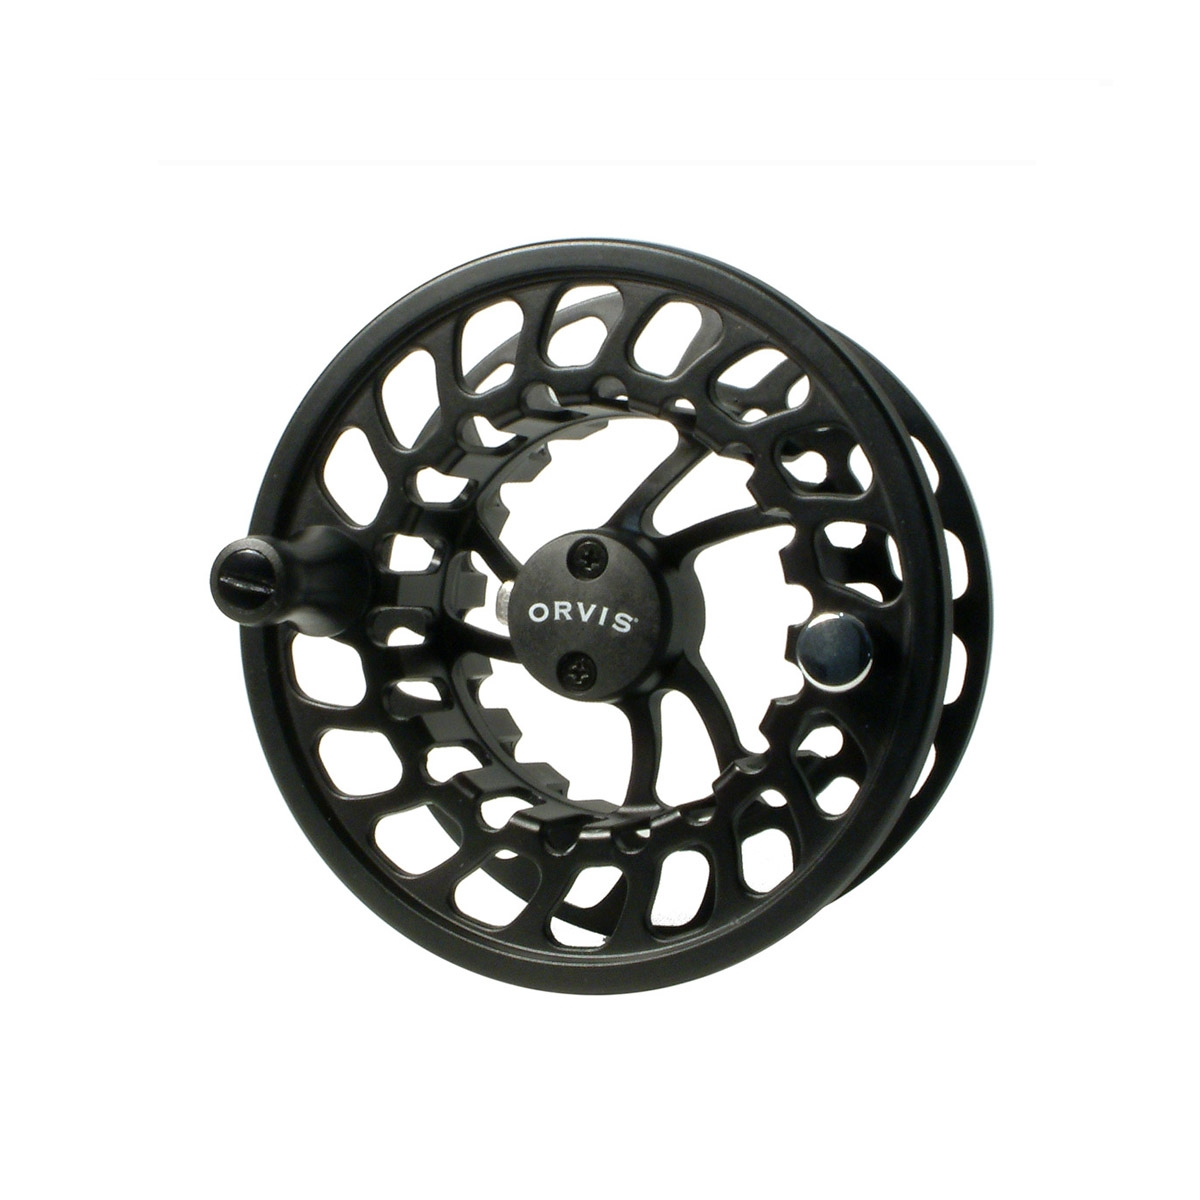 Orvis Clearwater Large Arbor Extra Spool